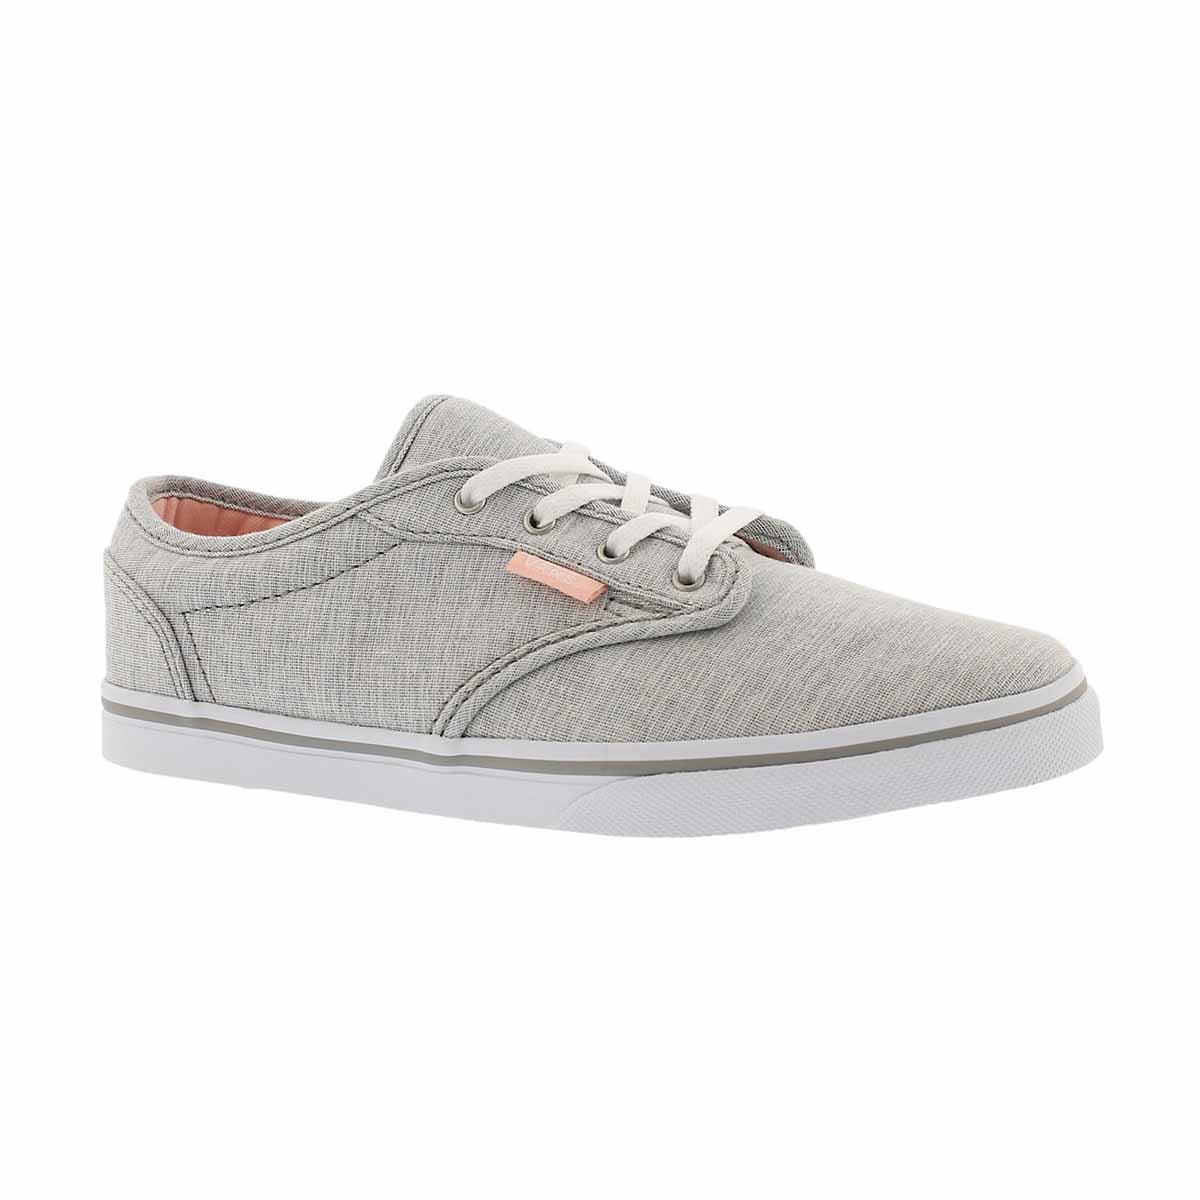 Girls' ATWOOD grey/pink lace up sneakers